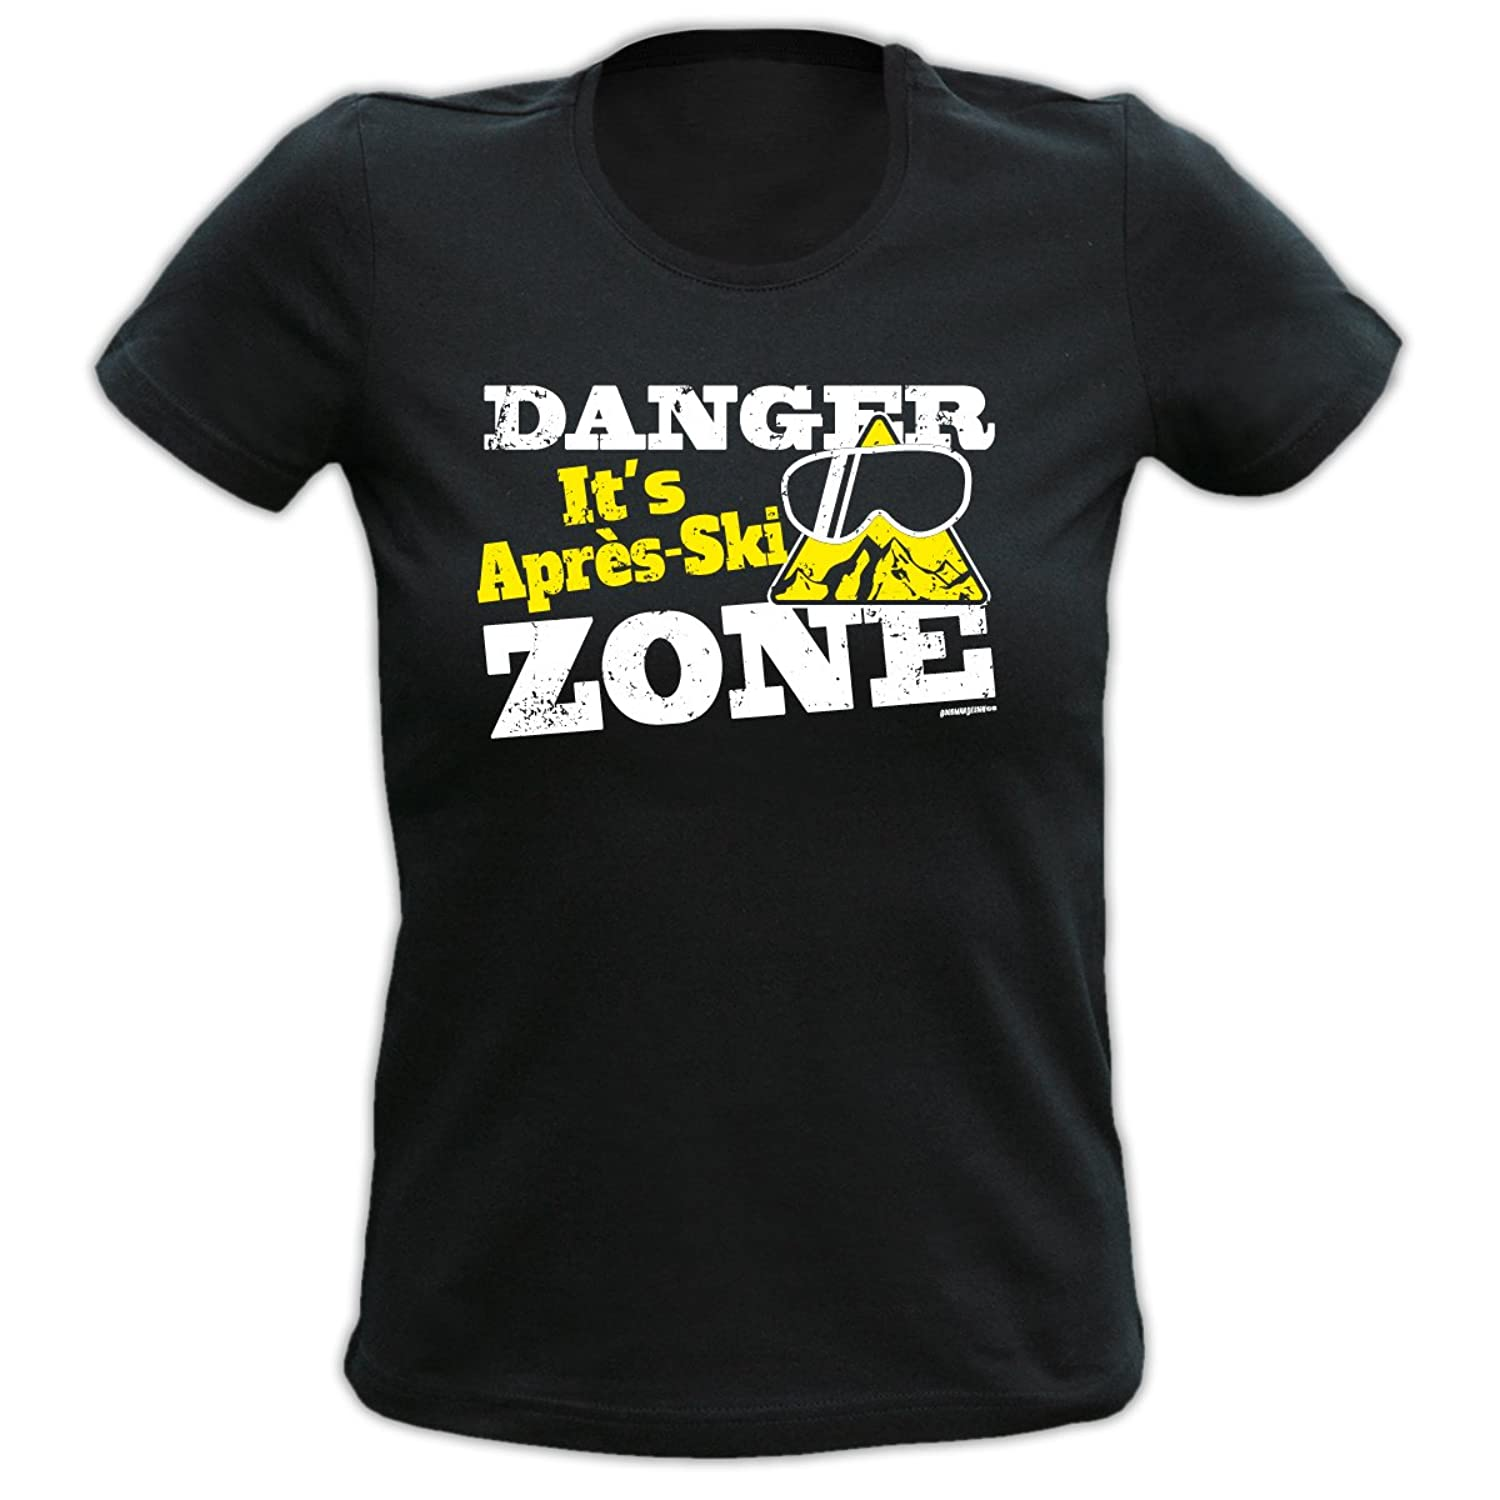 Mega Cooles Apres-Ski Girlie Shirt / Skipistenparty - Danger it's Apres-Ski Zone /Goodman Design Gr: Farbe: schwarz